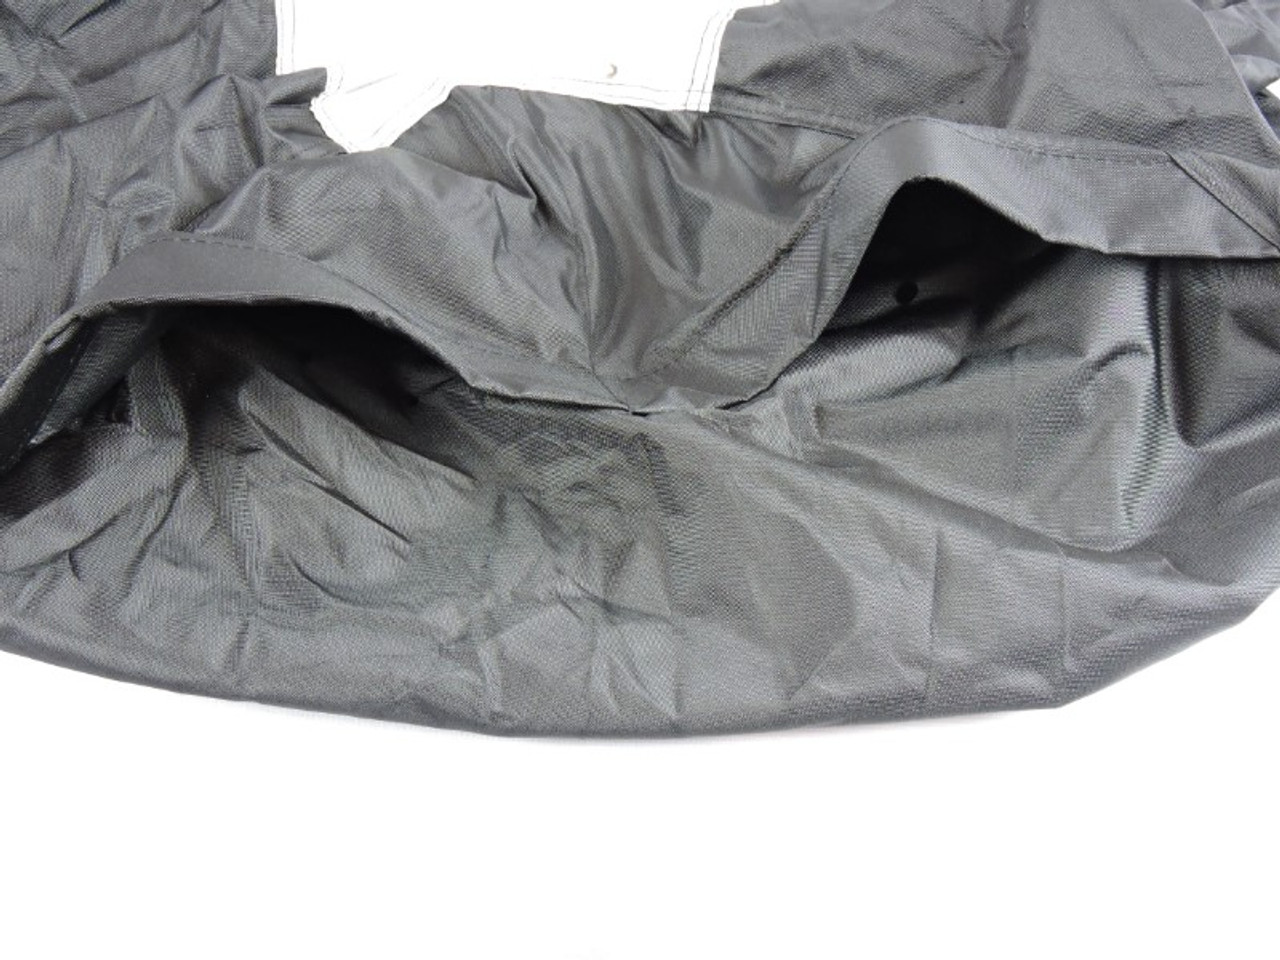 Nanook heavy duty trailering cover rear vents